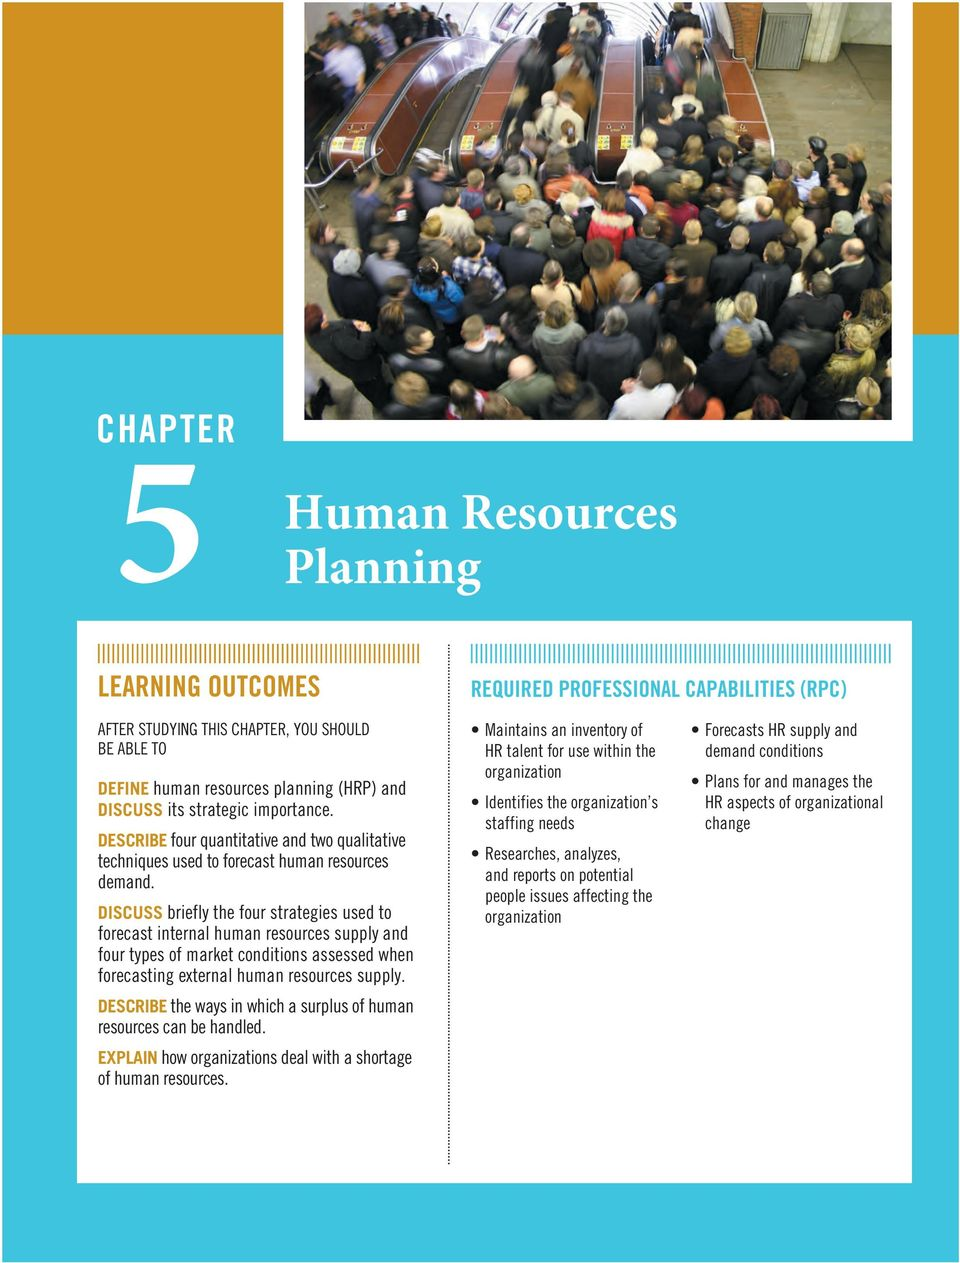 DISCUSS briefly the four strategies used to forecast internal human resources supply and four types of market conditions assessed when forecasting external human resources supply.